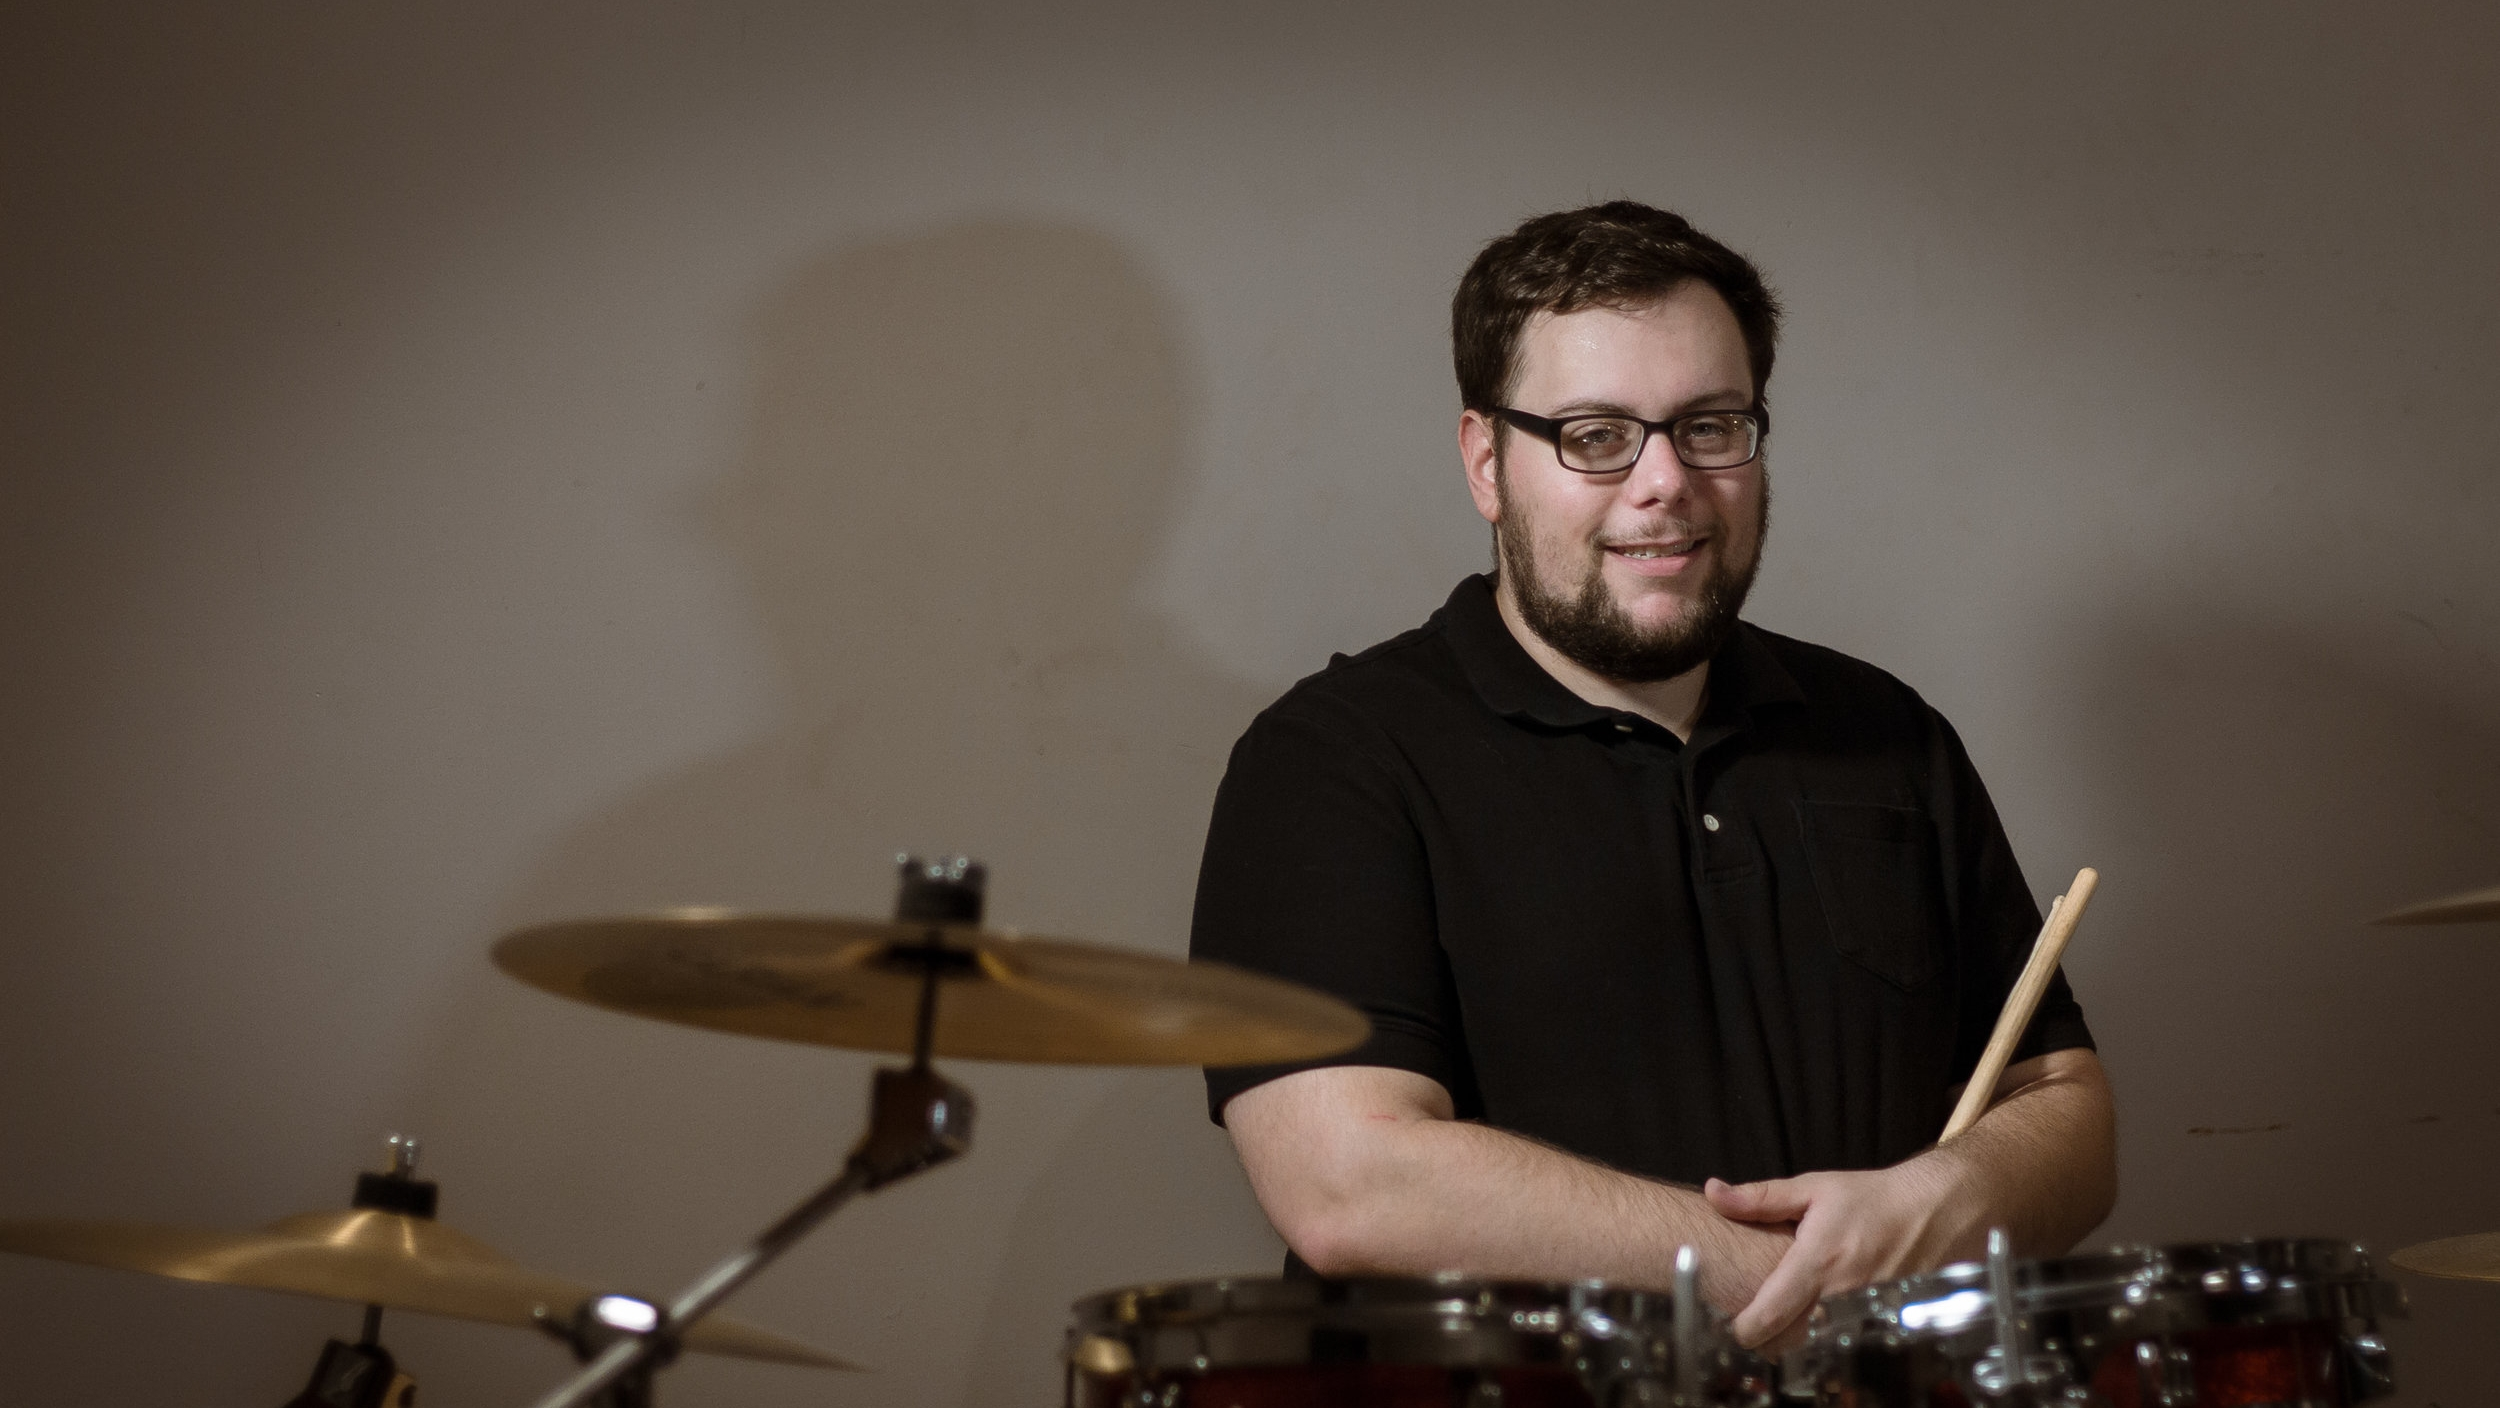 Schedule a lesson with Berklee College of Music alumi and professional drum set player Seth Pumilia.